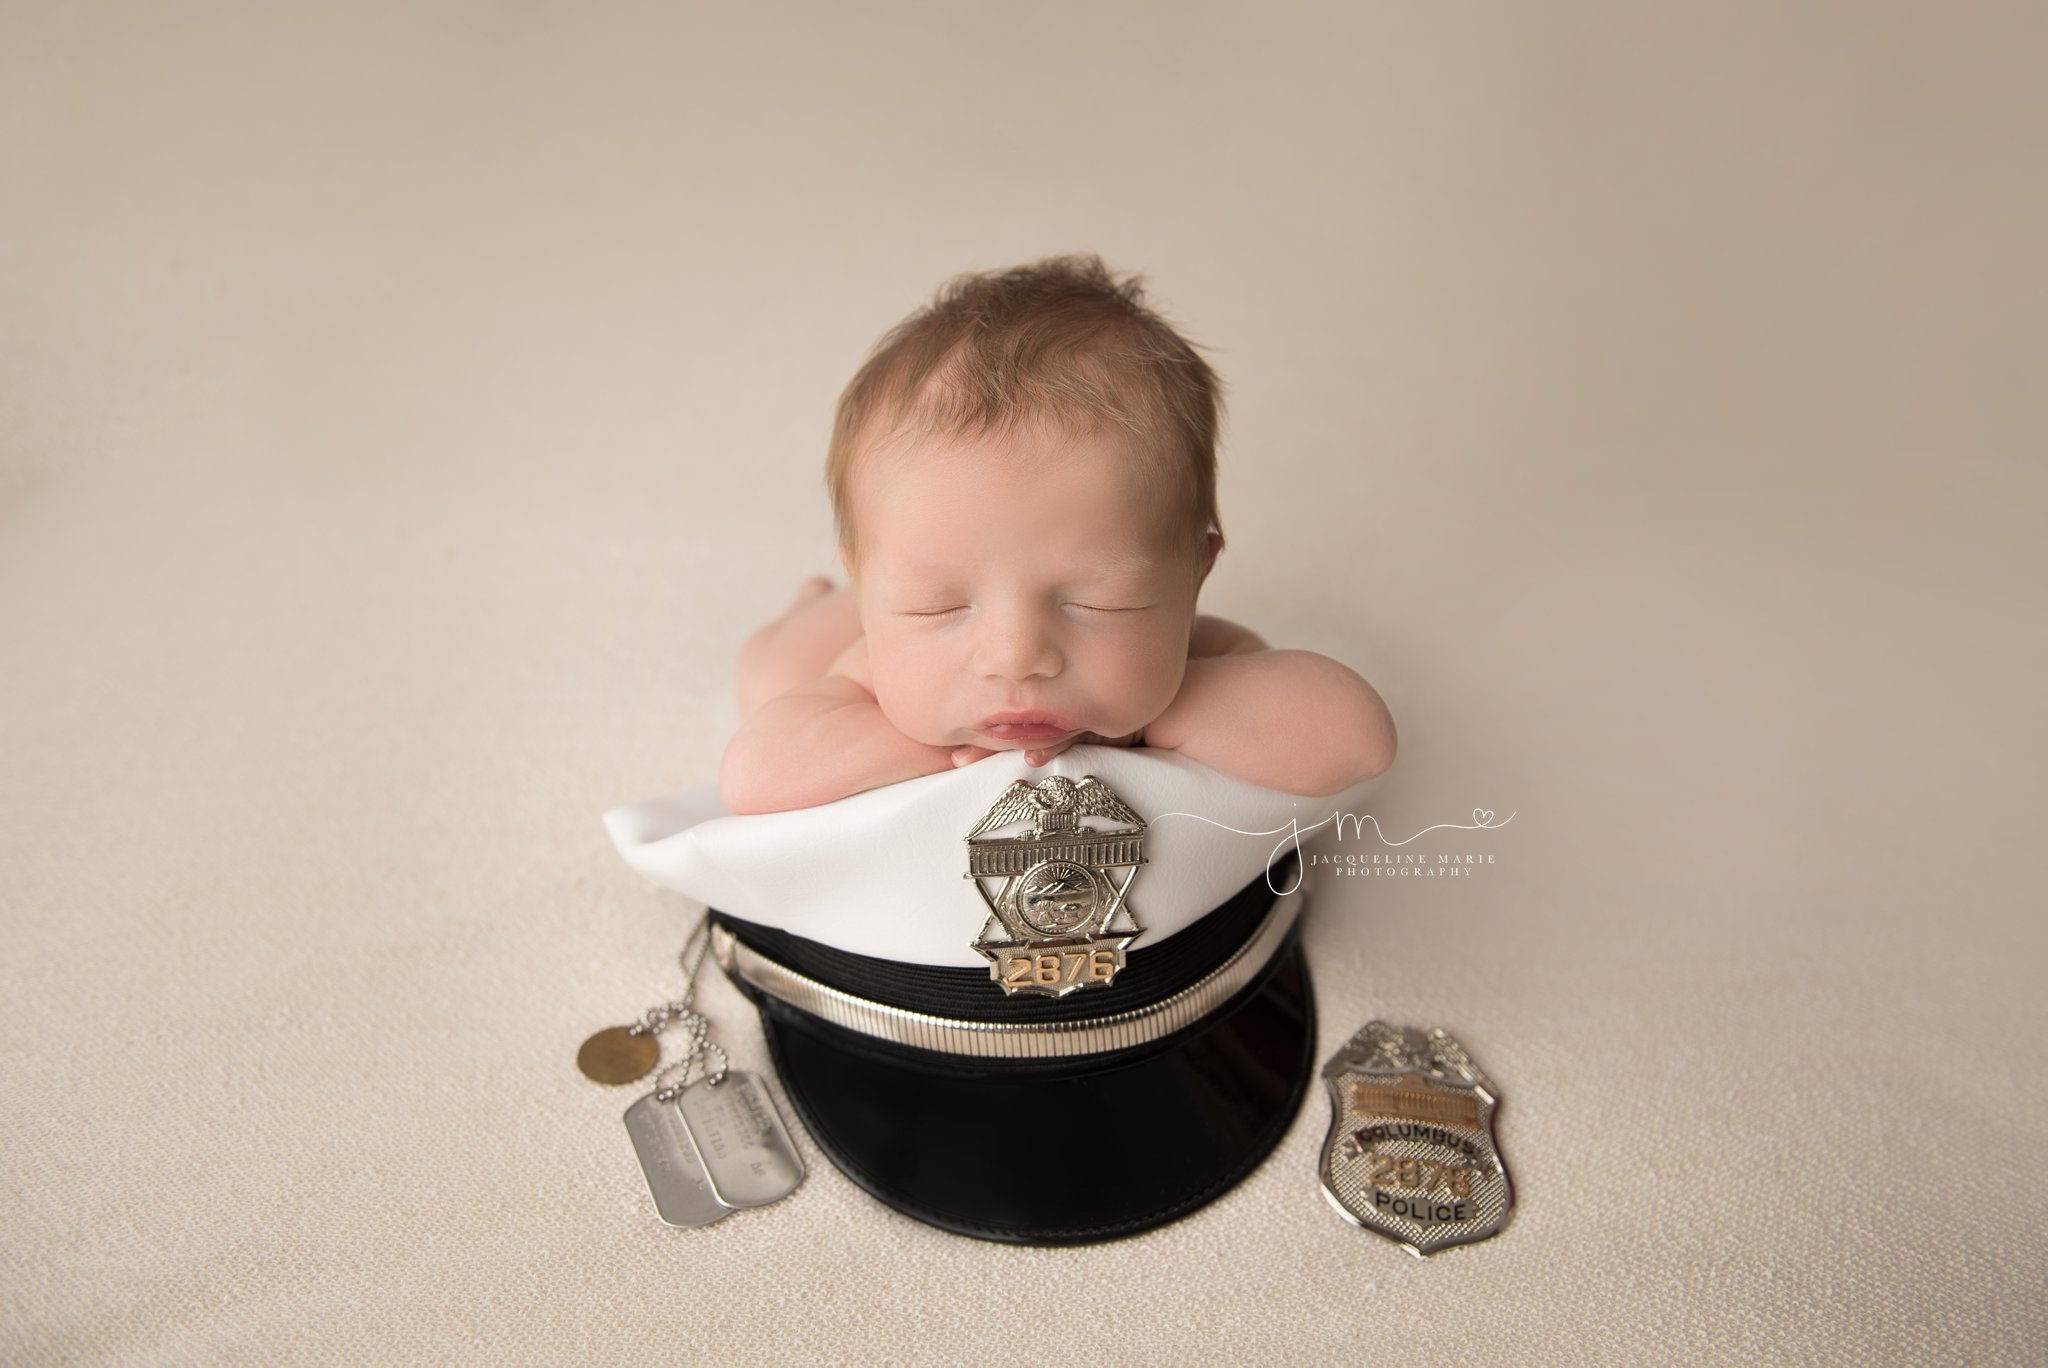 columbus ohio newborn bay boy is posed with his daddy's police hat and badge for newborn portraits